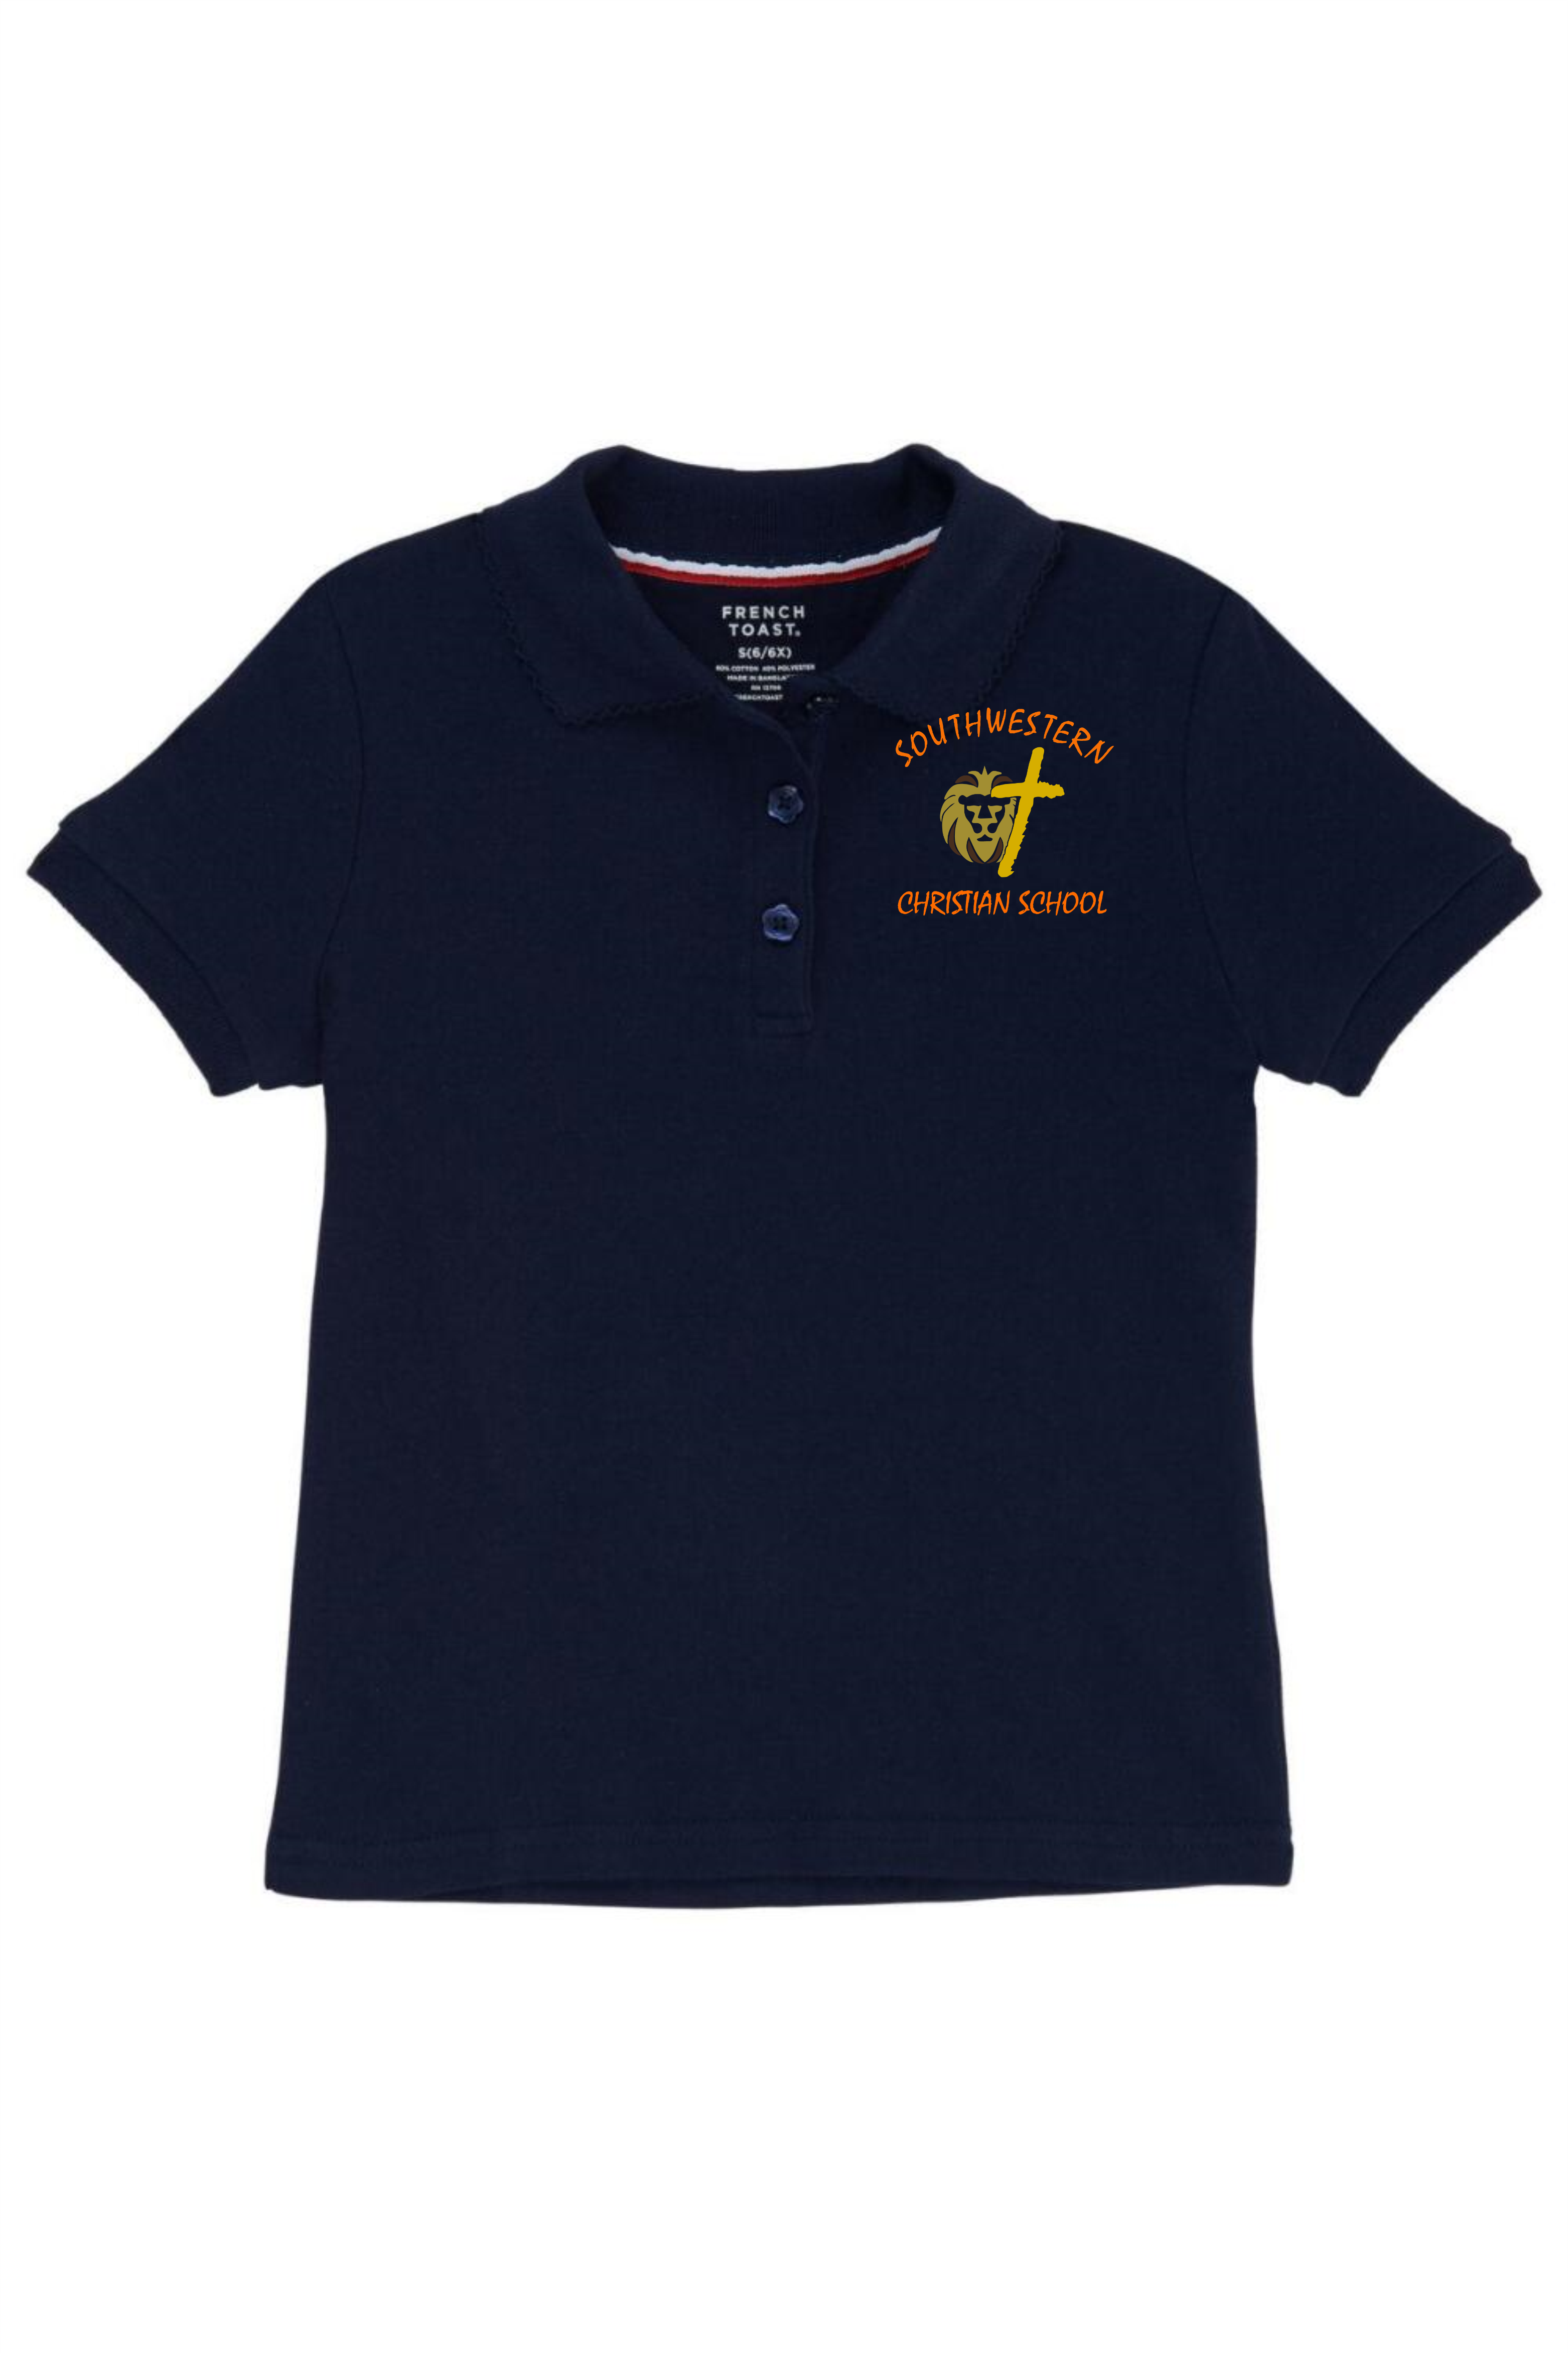 French Toast Girl's Cotton Short Sleeve Polo - SWCS (Polo Size: XS, French Toast Polo Color: Black - SWCS)